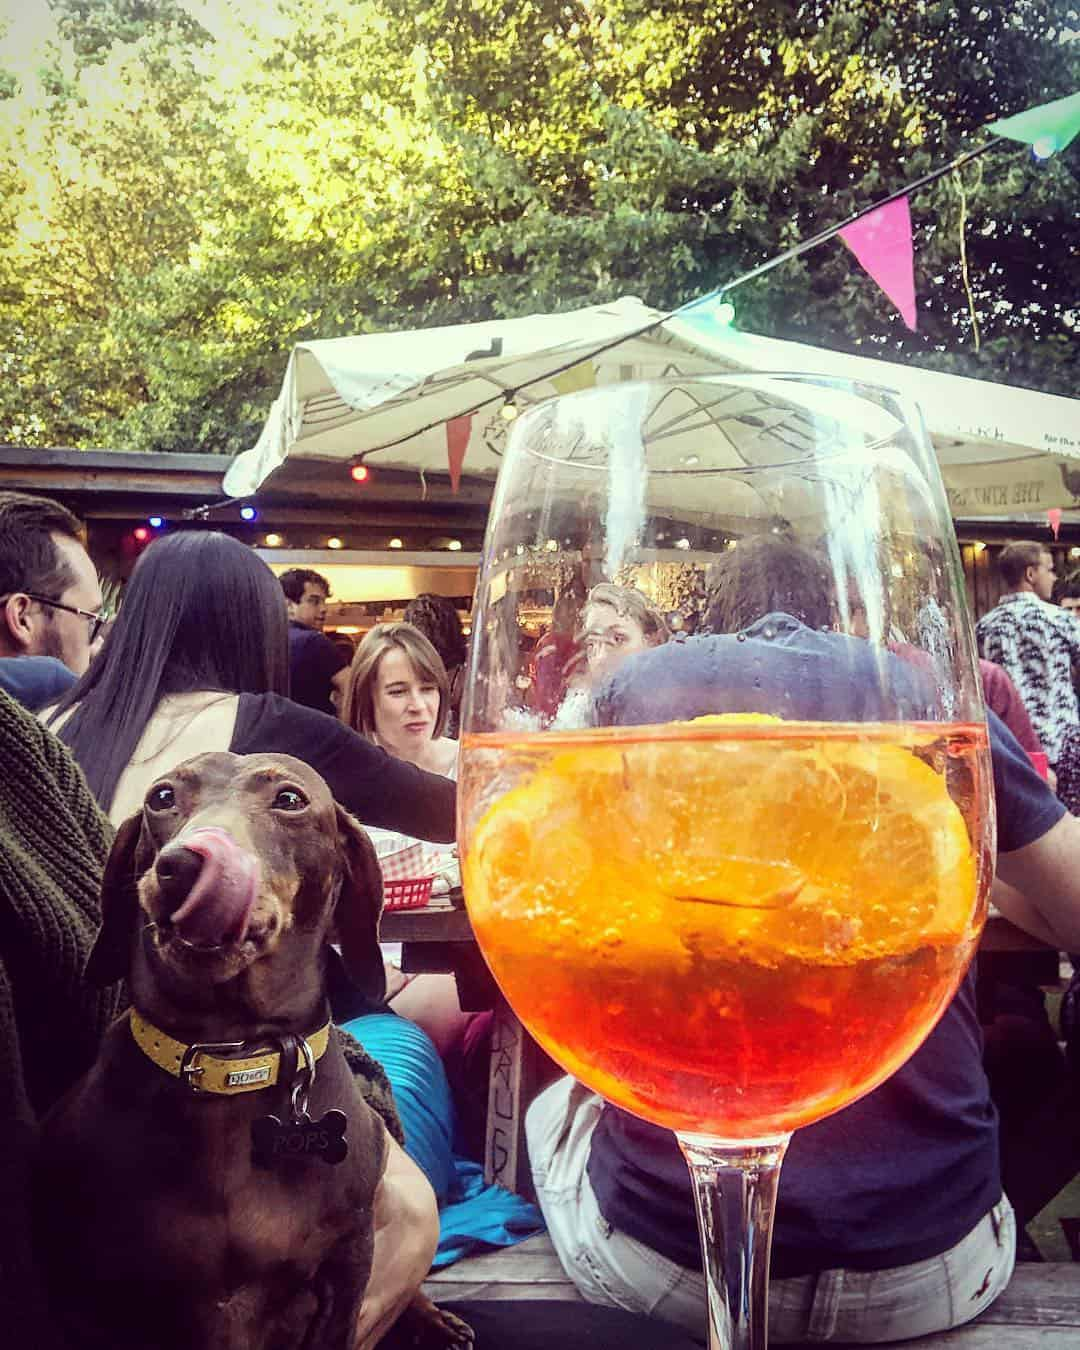 My Dog Friendly London by Pops the Sausage - Peoples Park Tavern 4